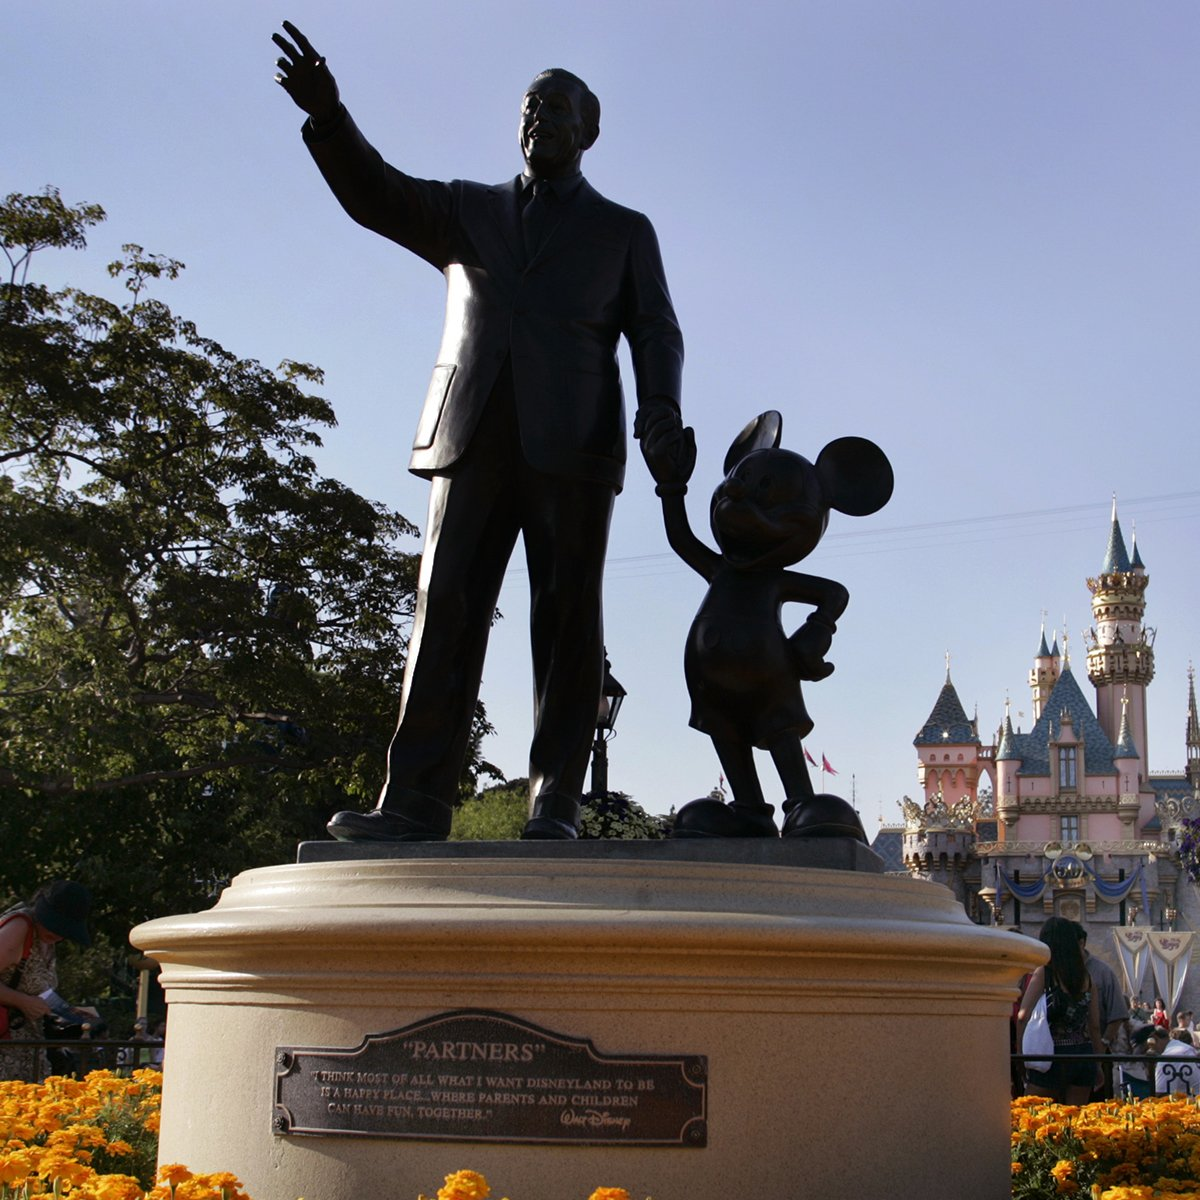 """Slide 14 of 19: Disneyland celebrated its 50th anniversary in 2005—and the """"Partners"""" statue depicting a hand-in-hand Walt Disney and Mickey Mouse remains a popular photo spot for park guests. Another park favorite? Grilled cheese. Get the recipe here."""